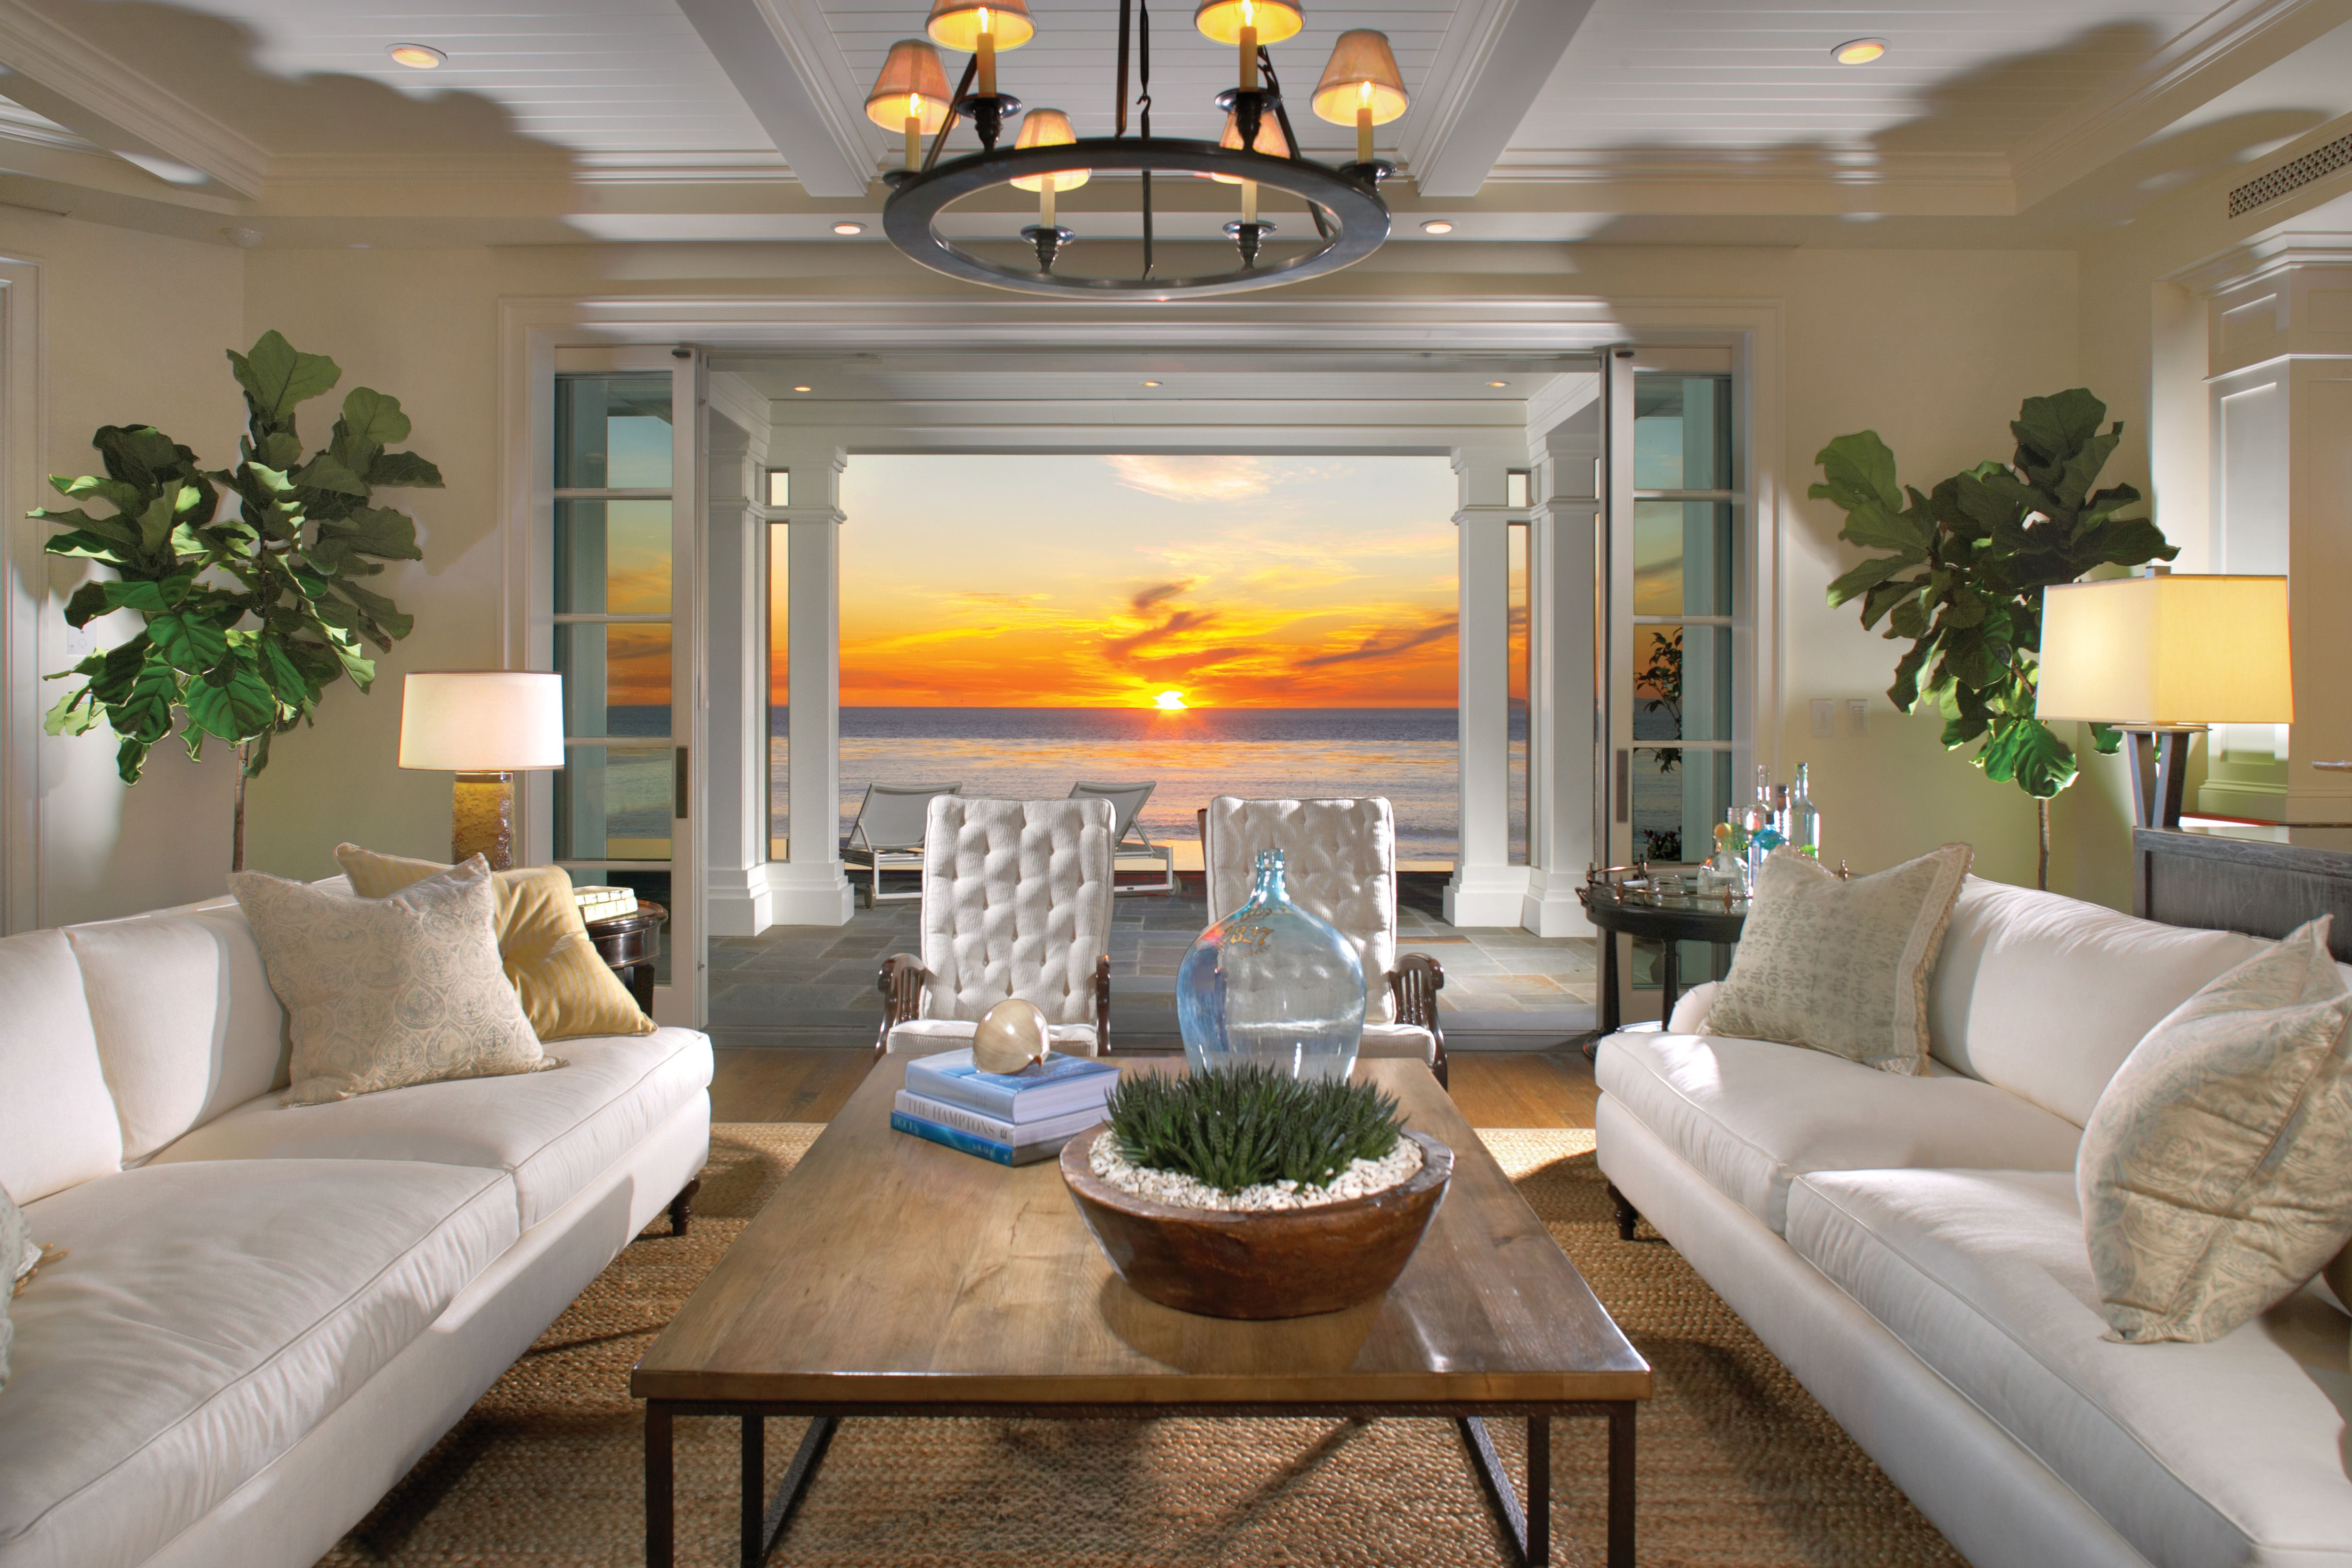 Superior Beautiful View Captures The Essence Of This Cape Cod Design   Cape Cod  Beach Home Inspiration